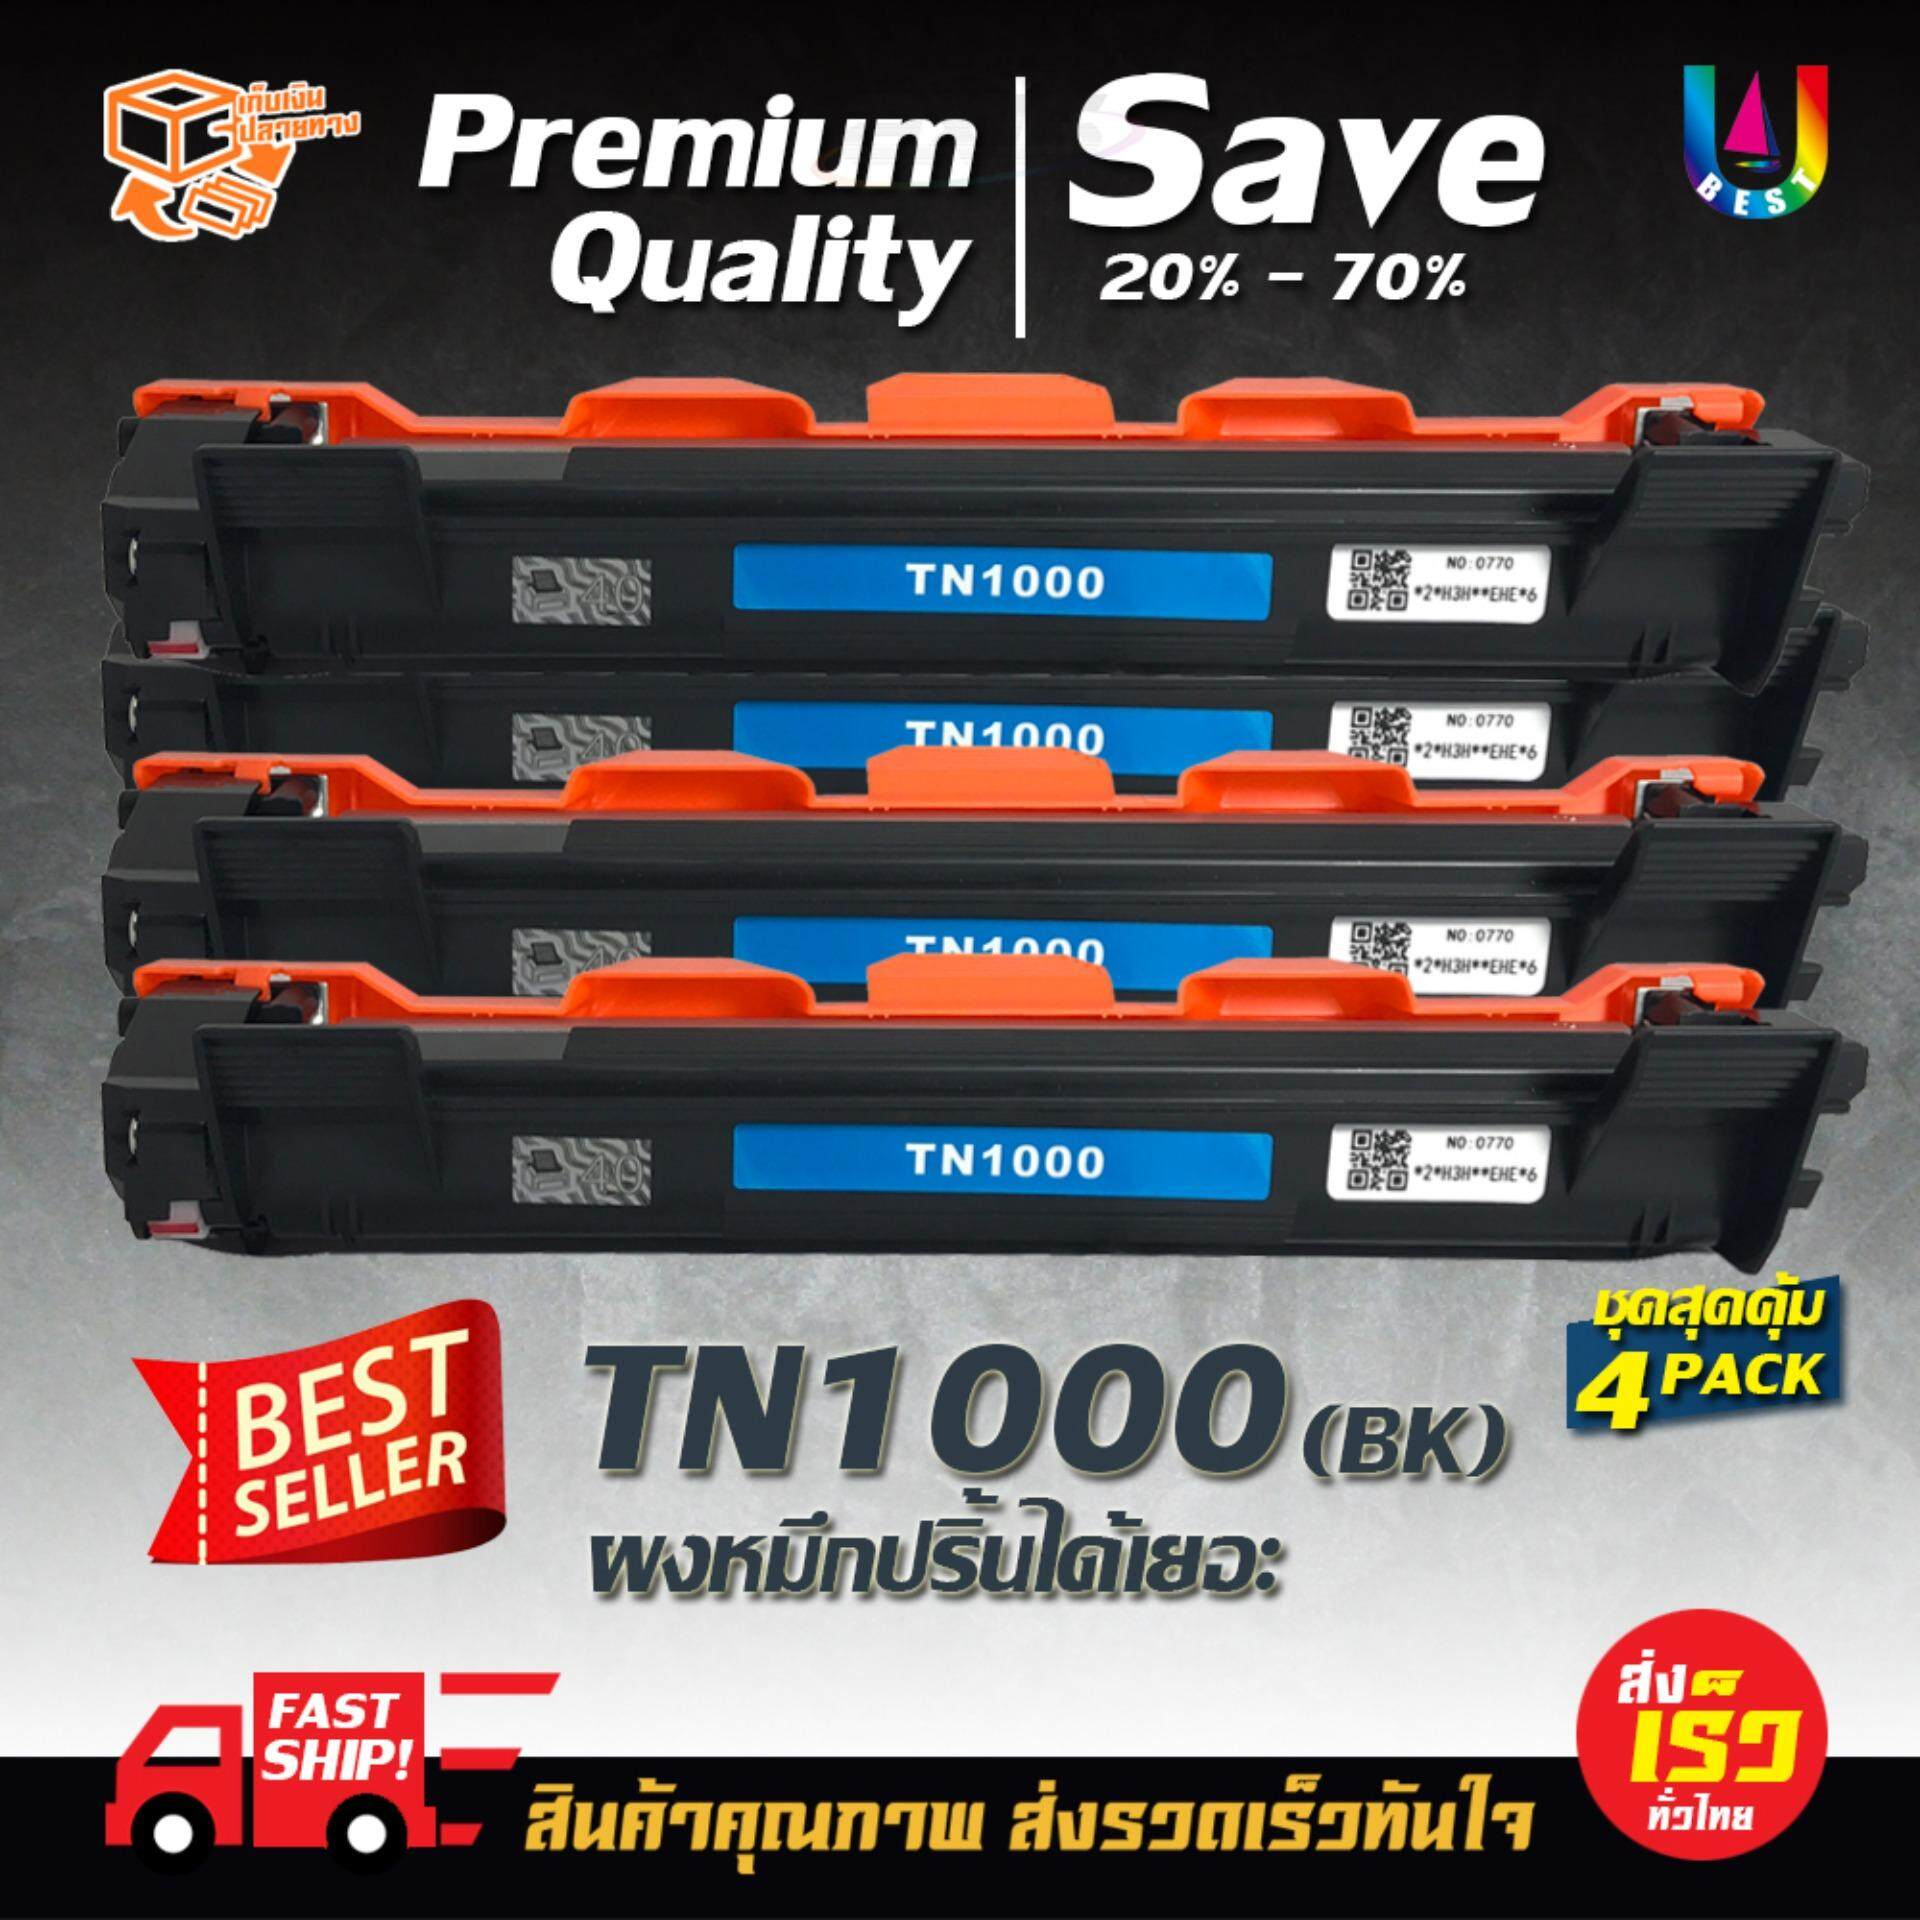 ขาย Brother Tn 1000 Tn1000 For Printer Brother Hl 1110 1210W Dcp 1510 1610W Mfc 1810 Park 4 ถูก